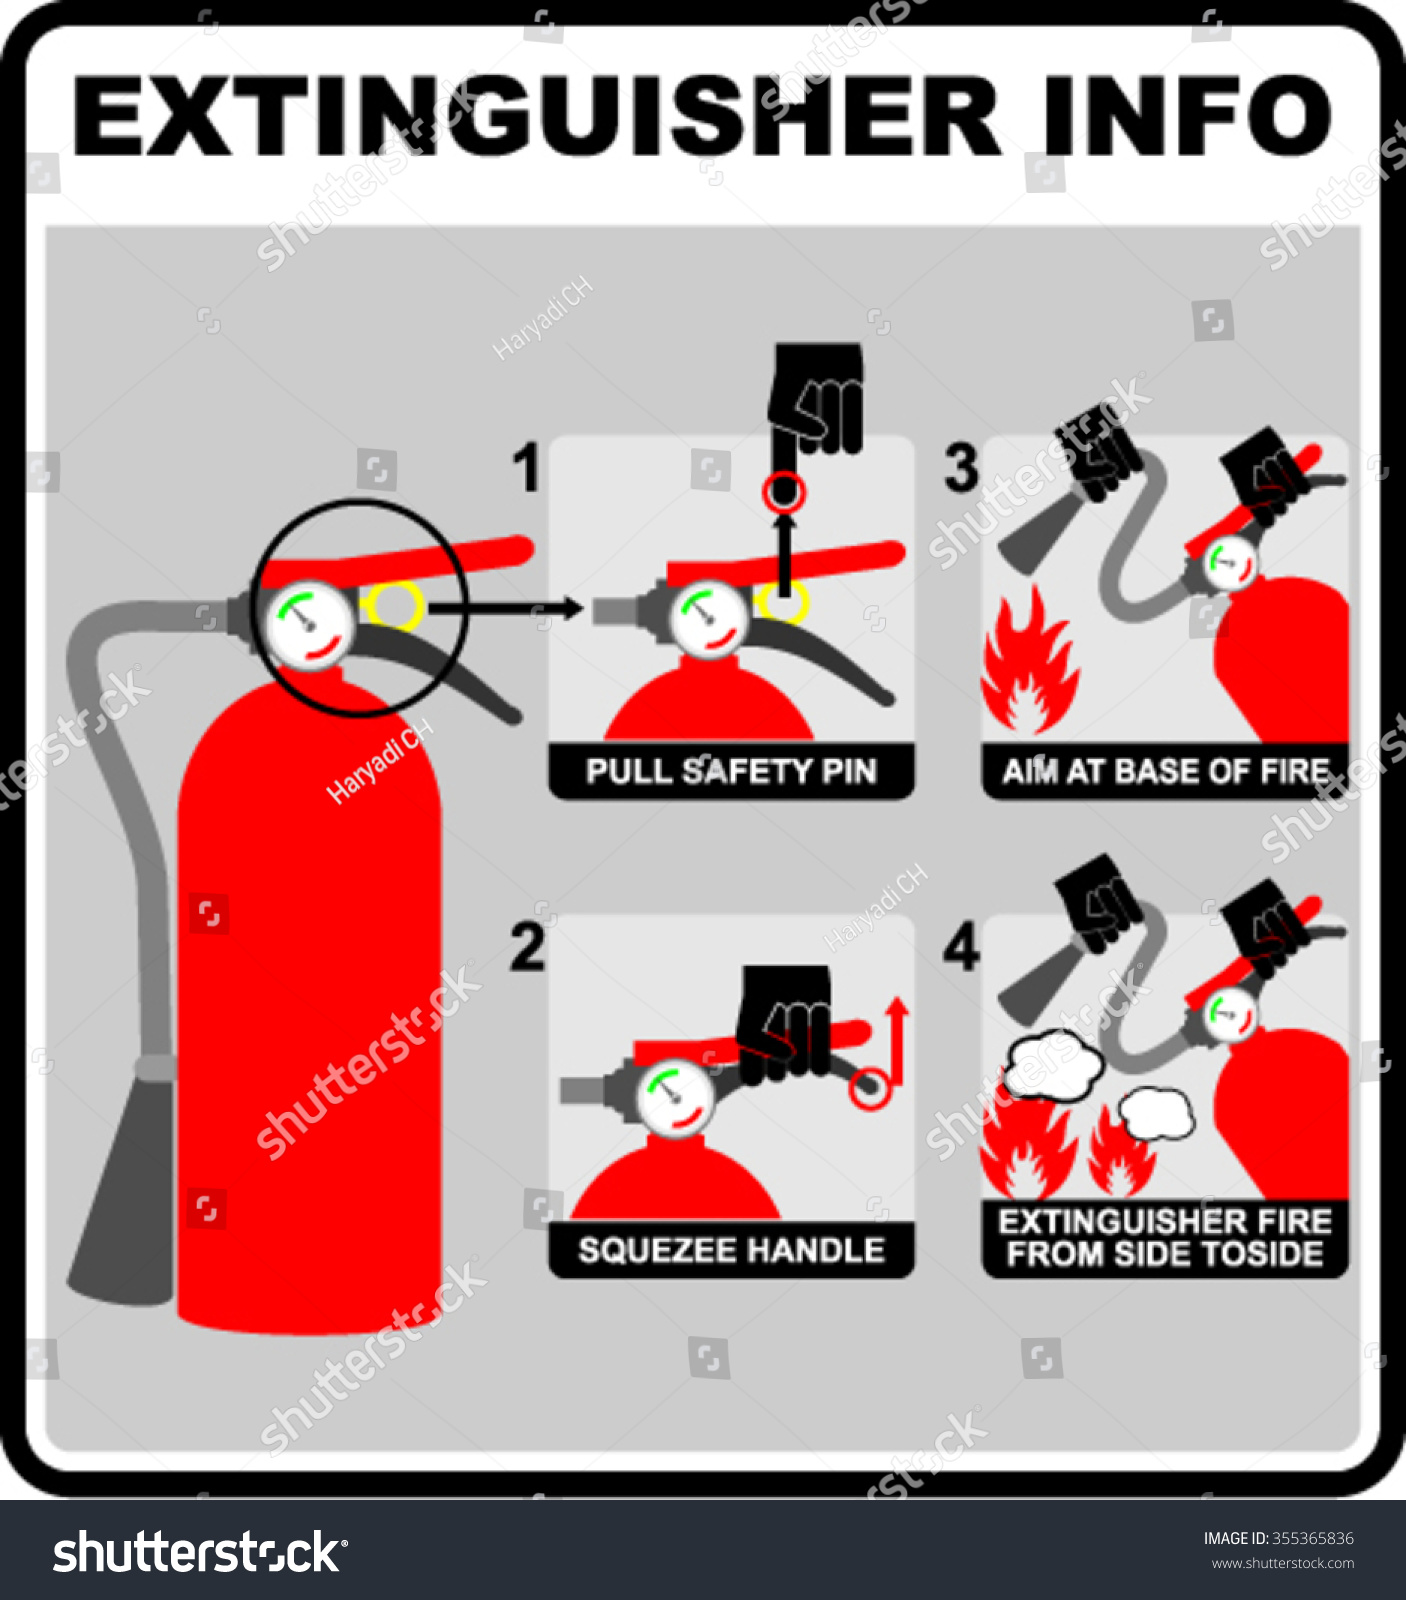 fire extinguisher essay I where a fire extinguisher has been used for any purpose other than that of a fire extinguisher when should a fire extinguisher be used.